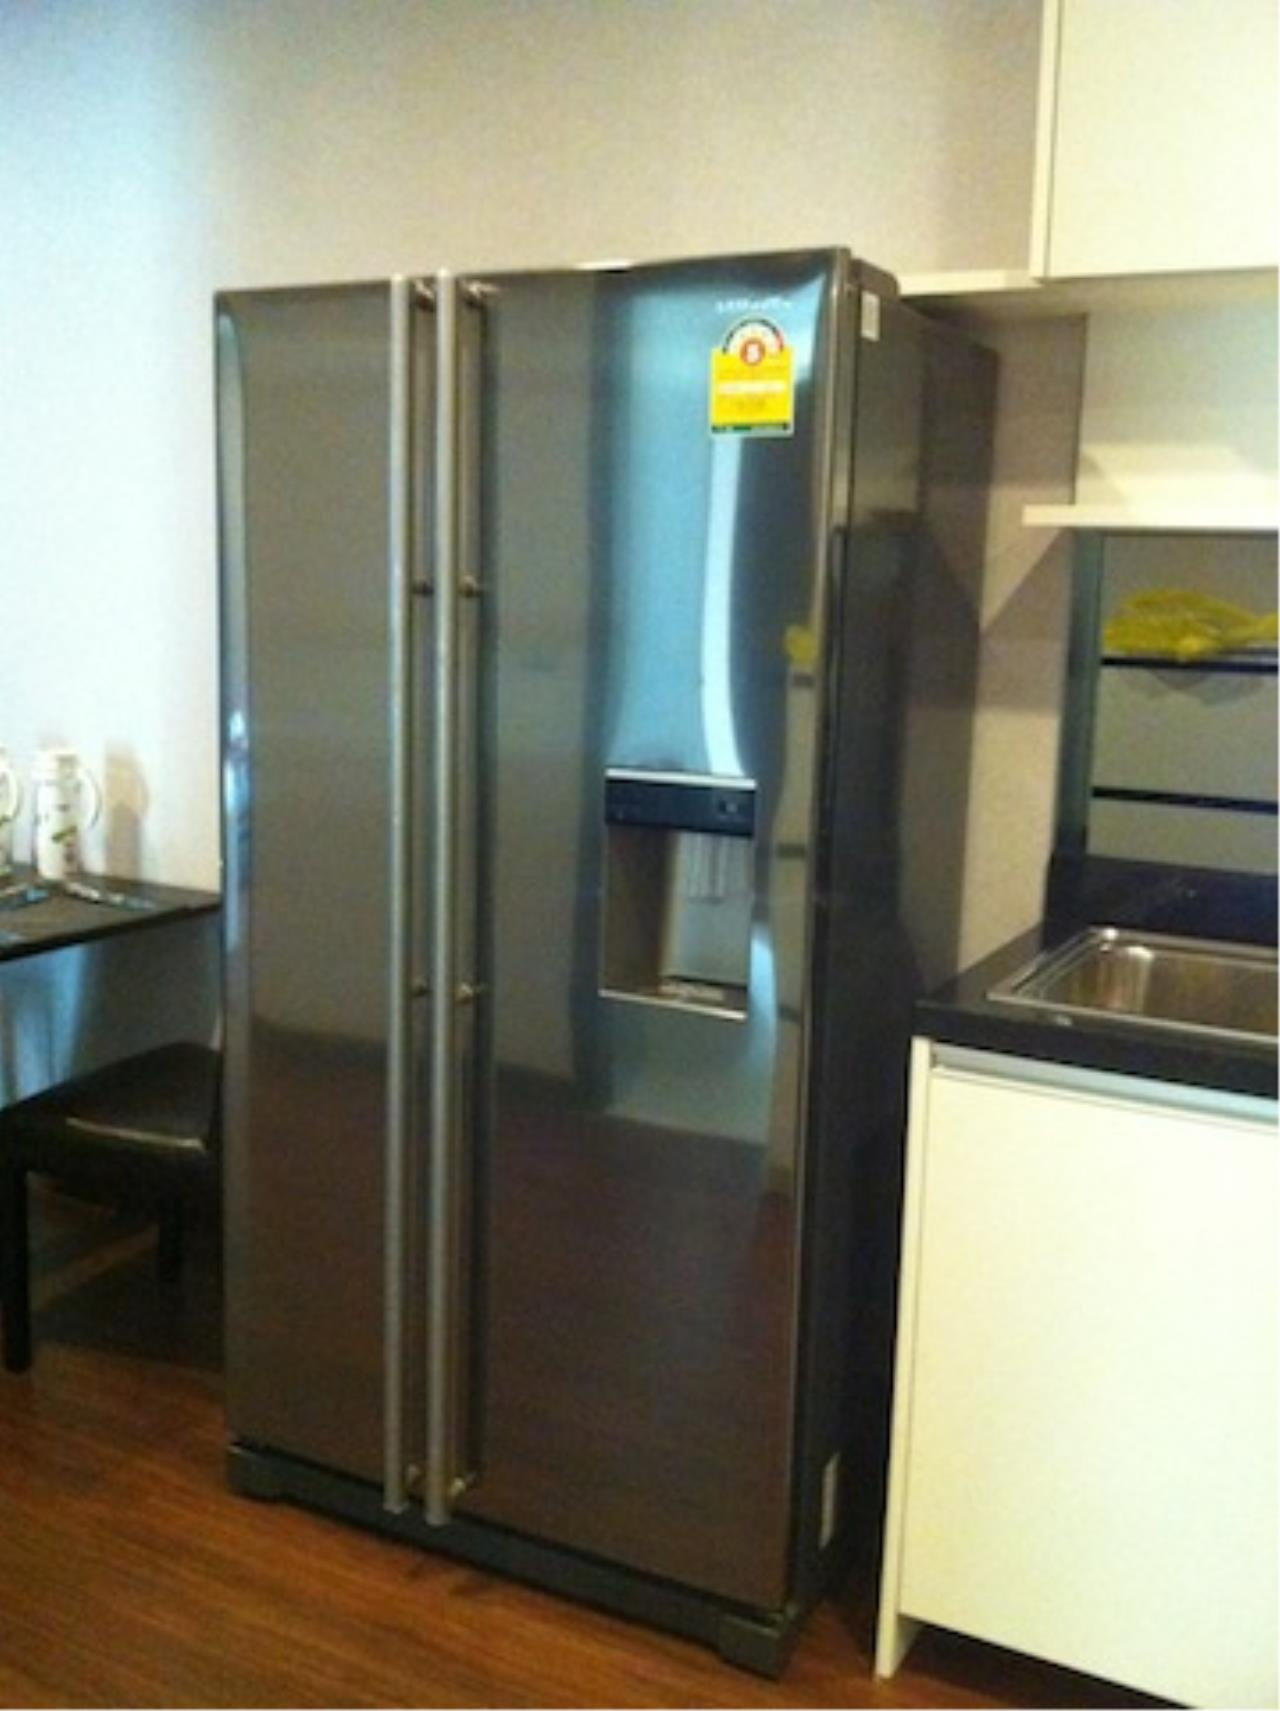 Quality Life Property Agency's Condo 1 Bedroom For Rent and For Sale  At Sky walk  35 ,  3